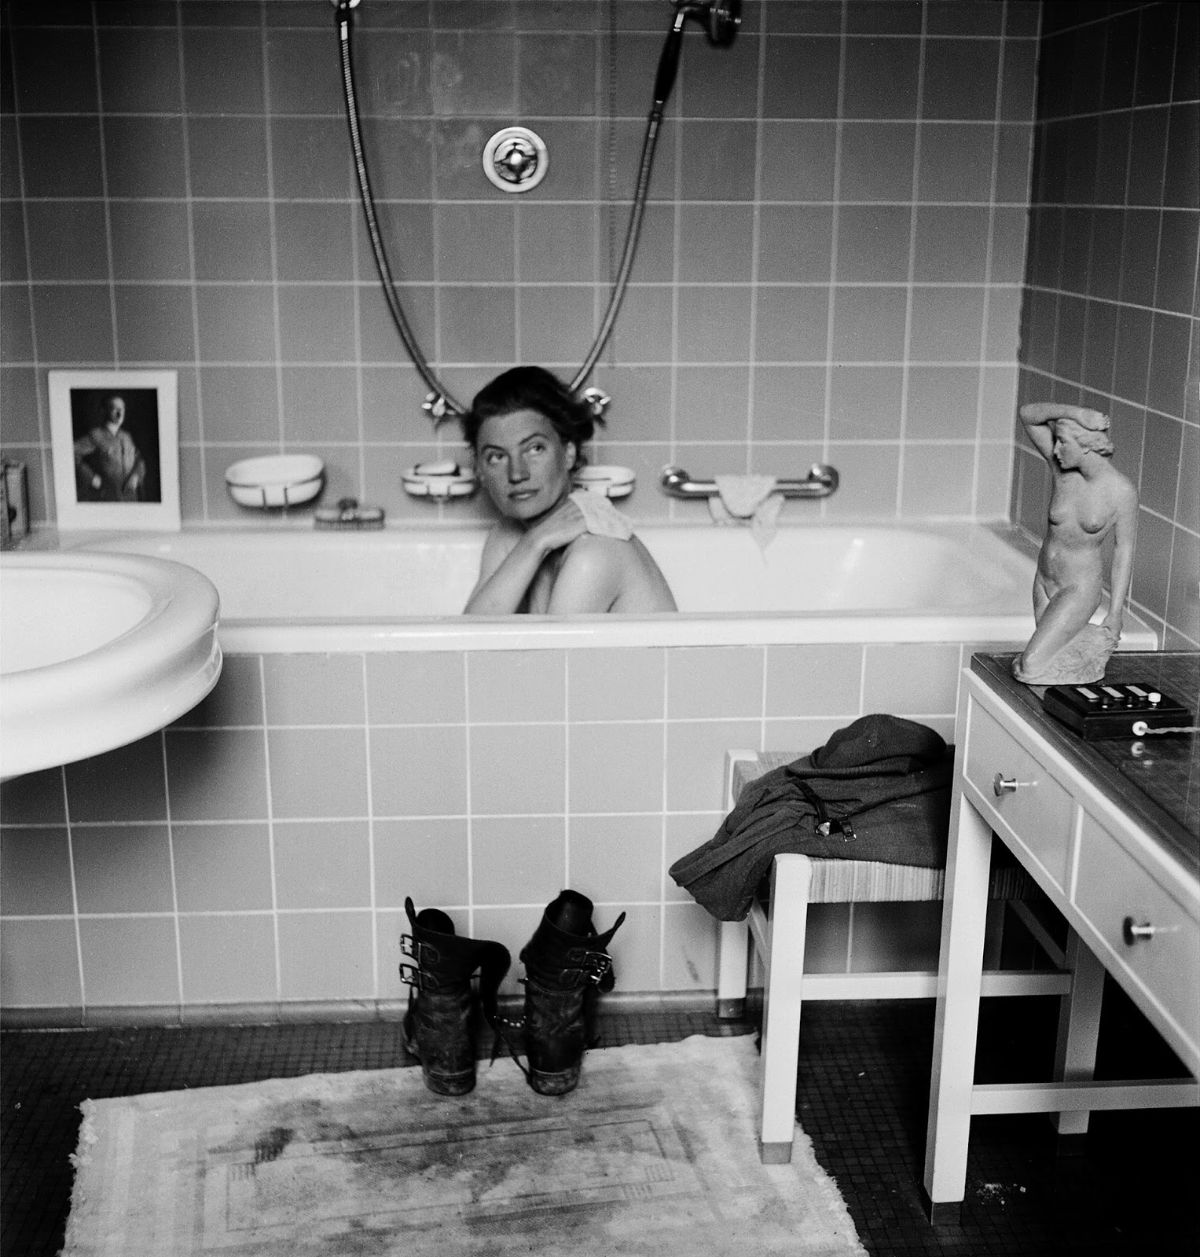 Lee Miller and David Scherman: The Photographers Who Took a Bath in Hitler's Apartment